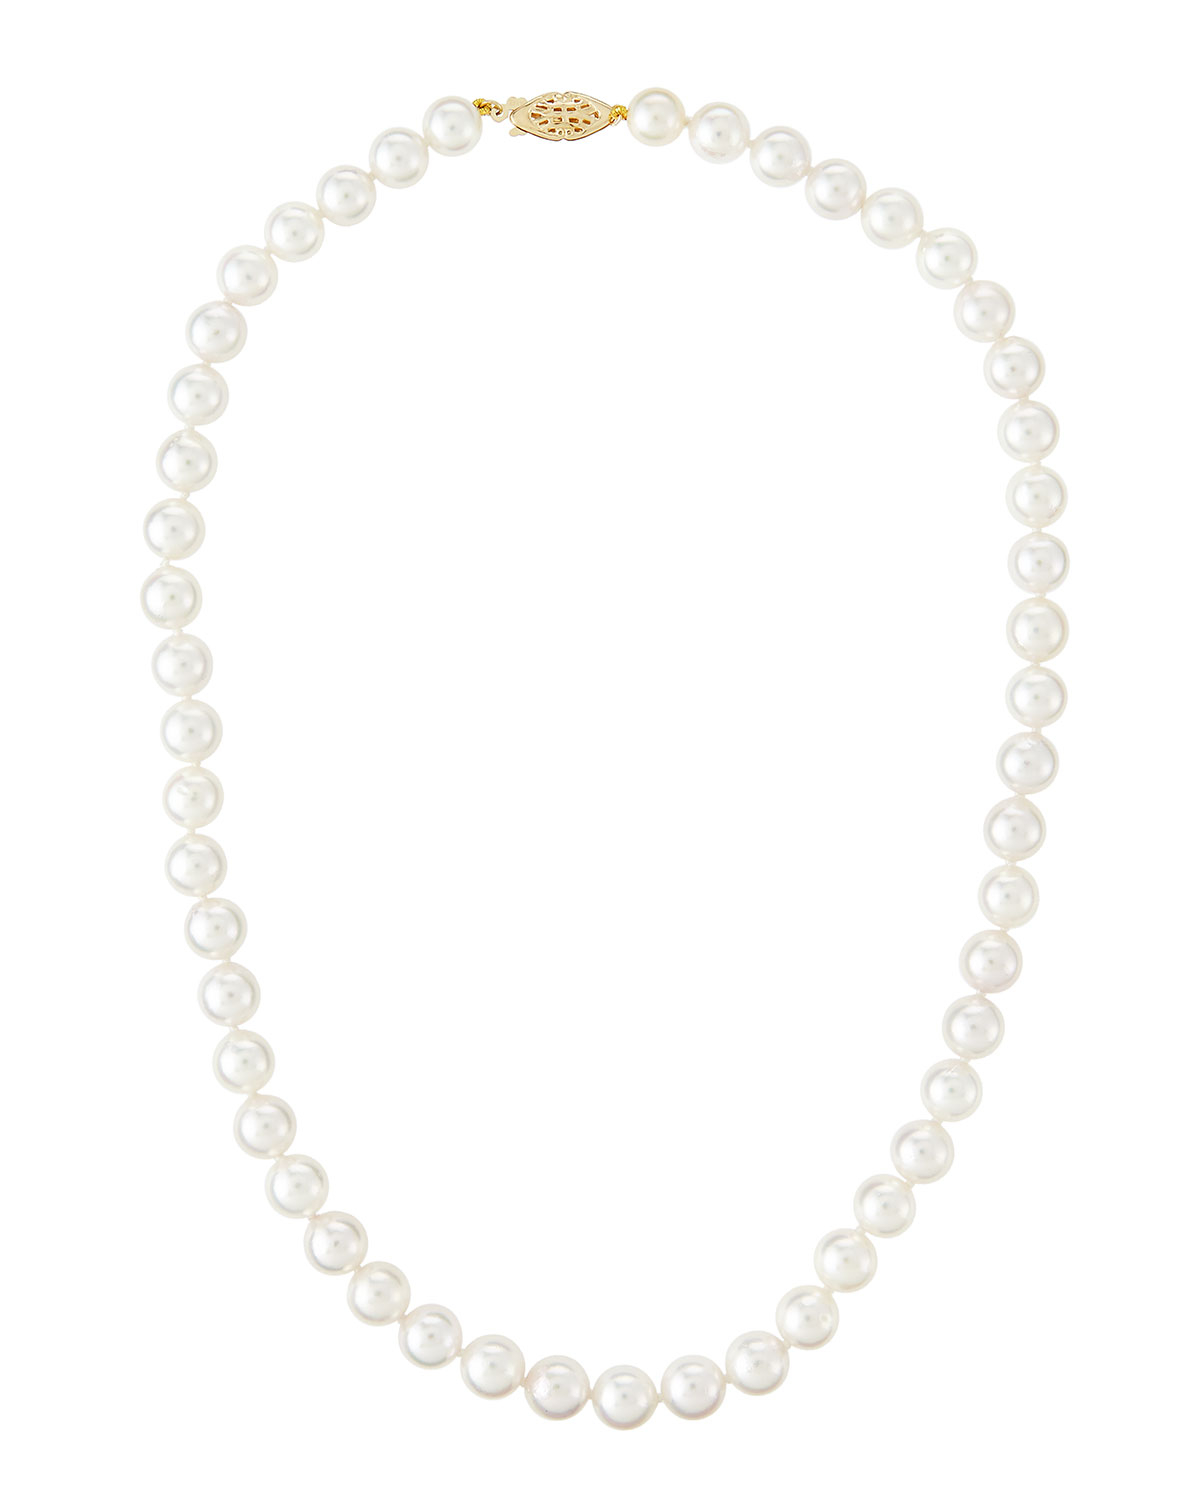 Ross Archery: Akoya Pearl Necklace